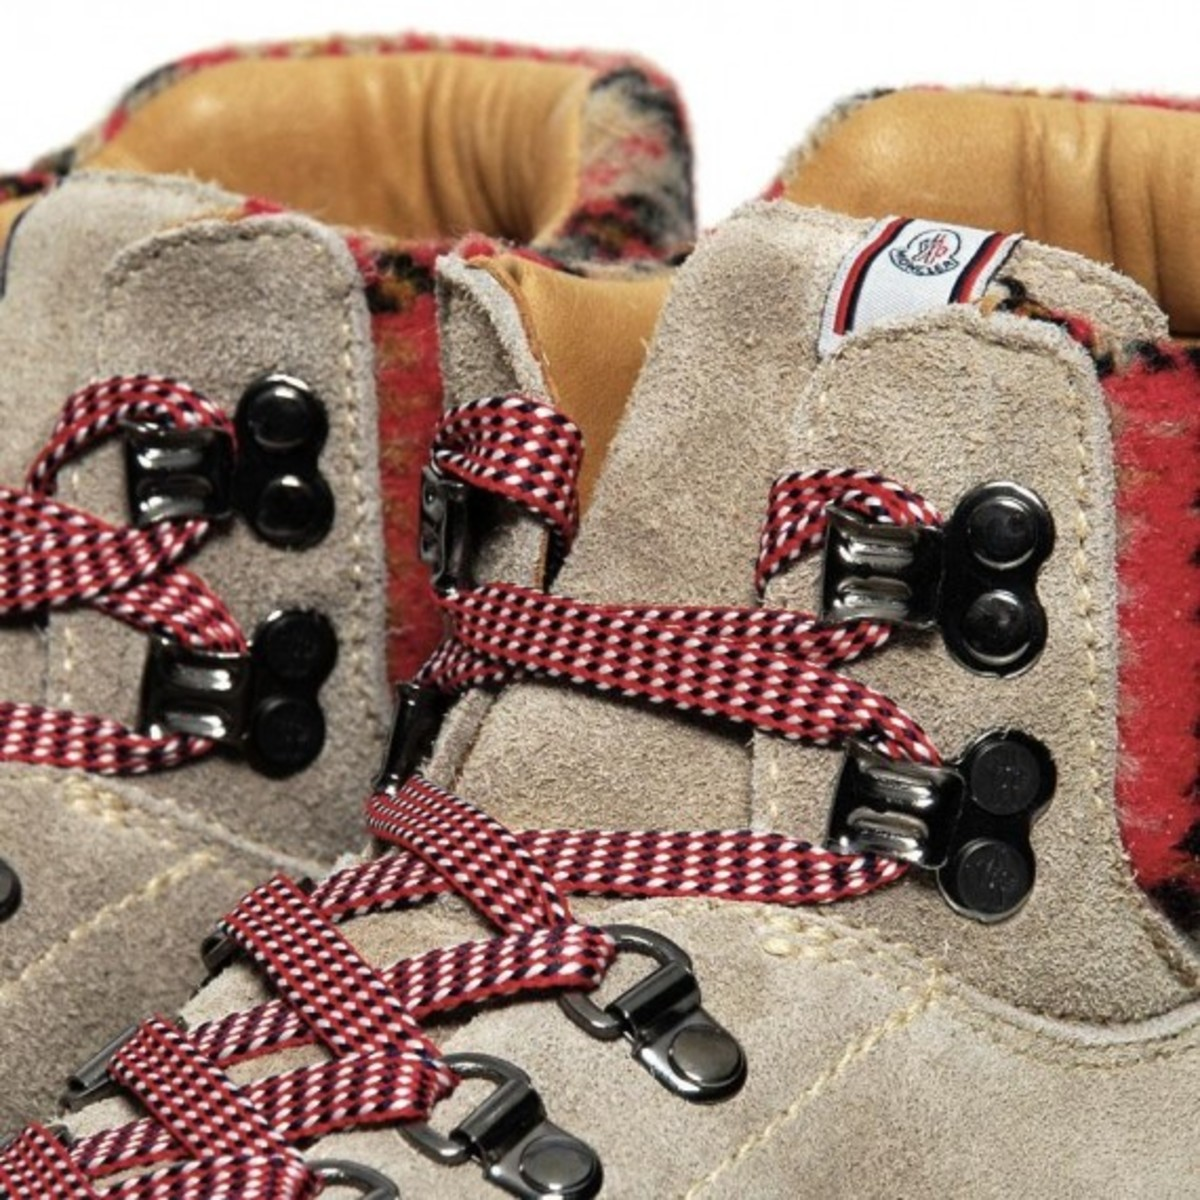 wool-patch-suede-mountain-boot-06